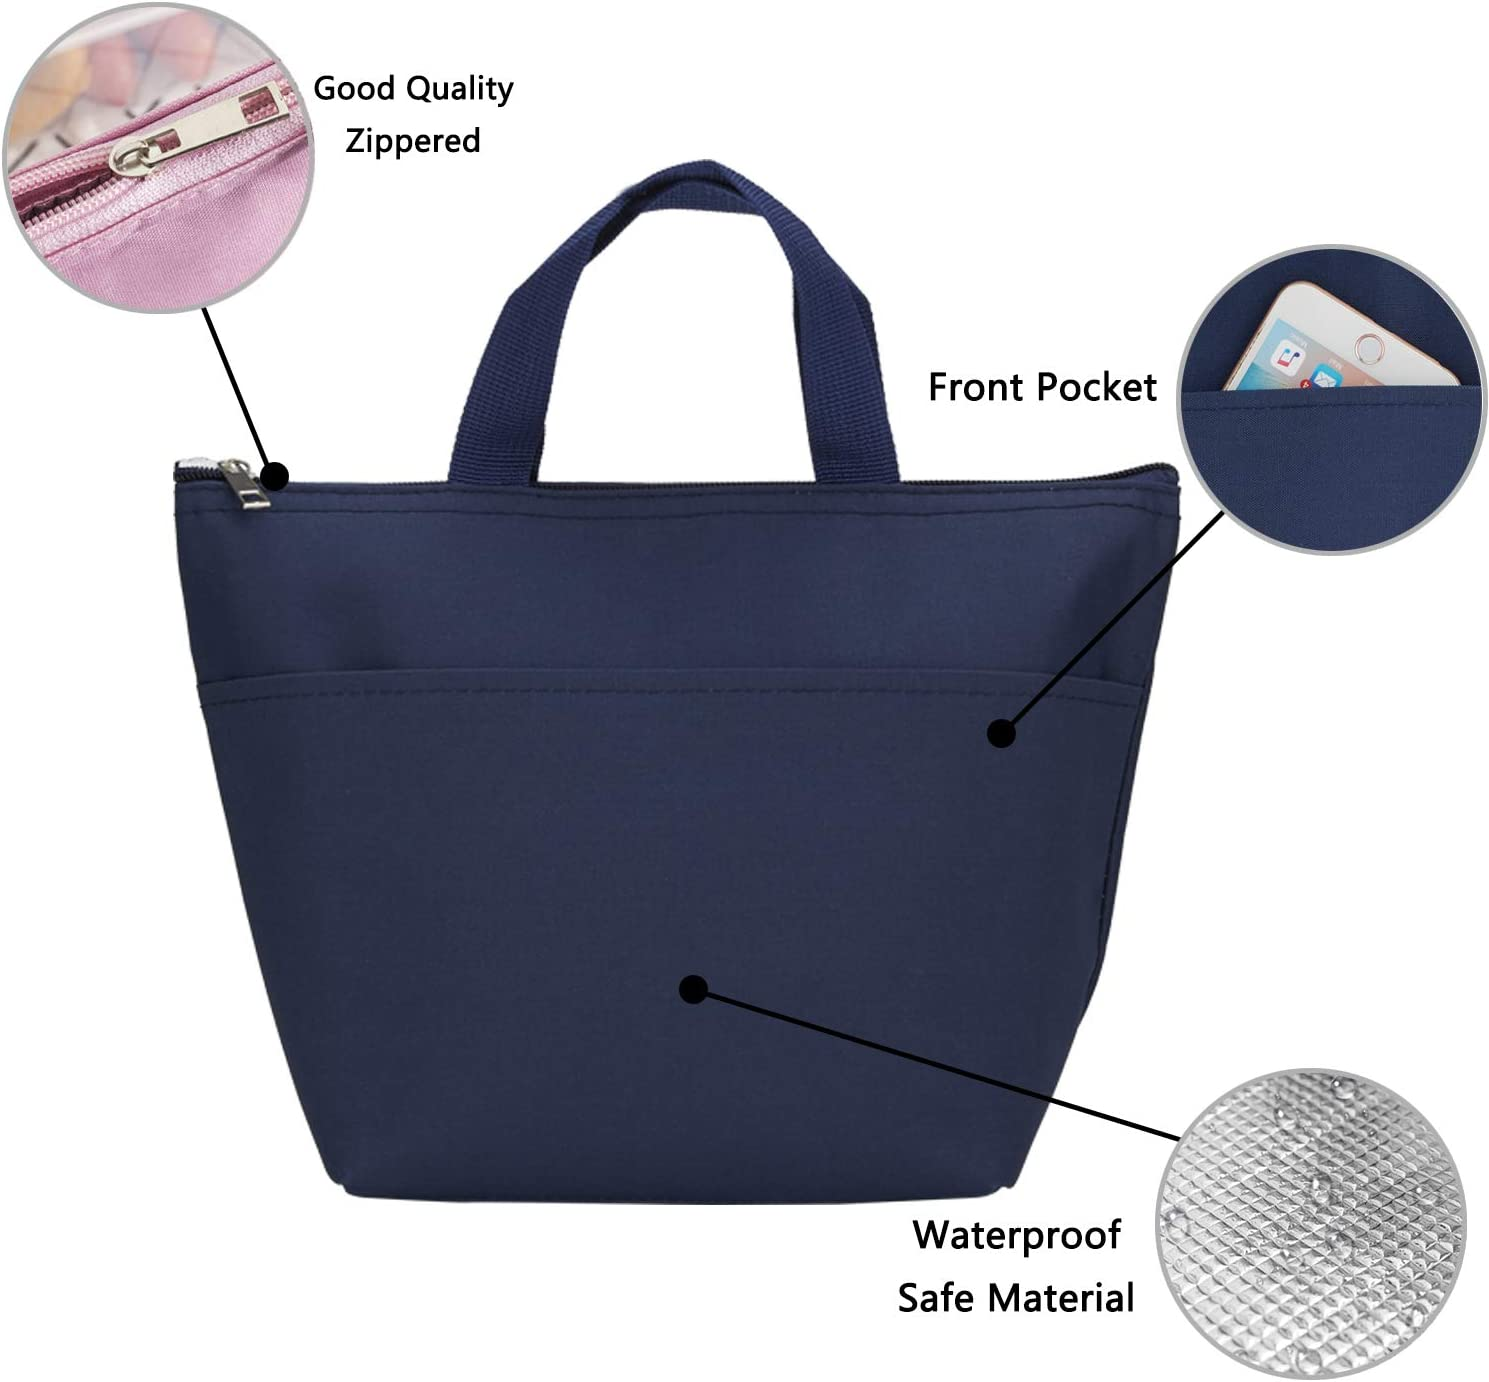 Grey Cooler Bag for Office Work Picnic School MAXTOP Insulated Lunch Bags for Women,thermal Lunch Tote with Front Pocket